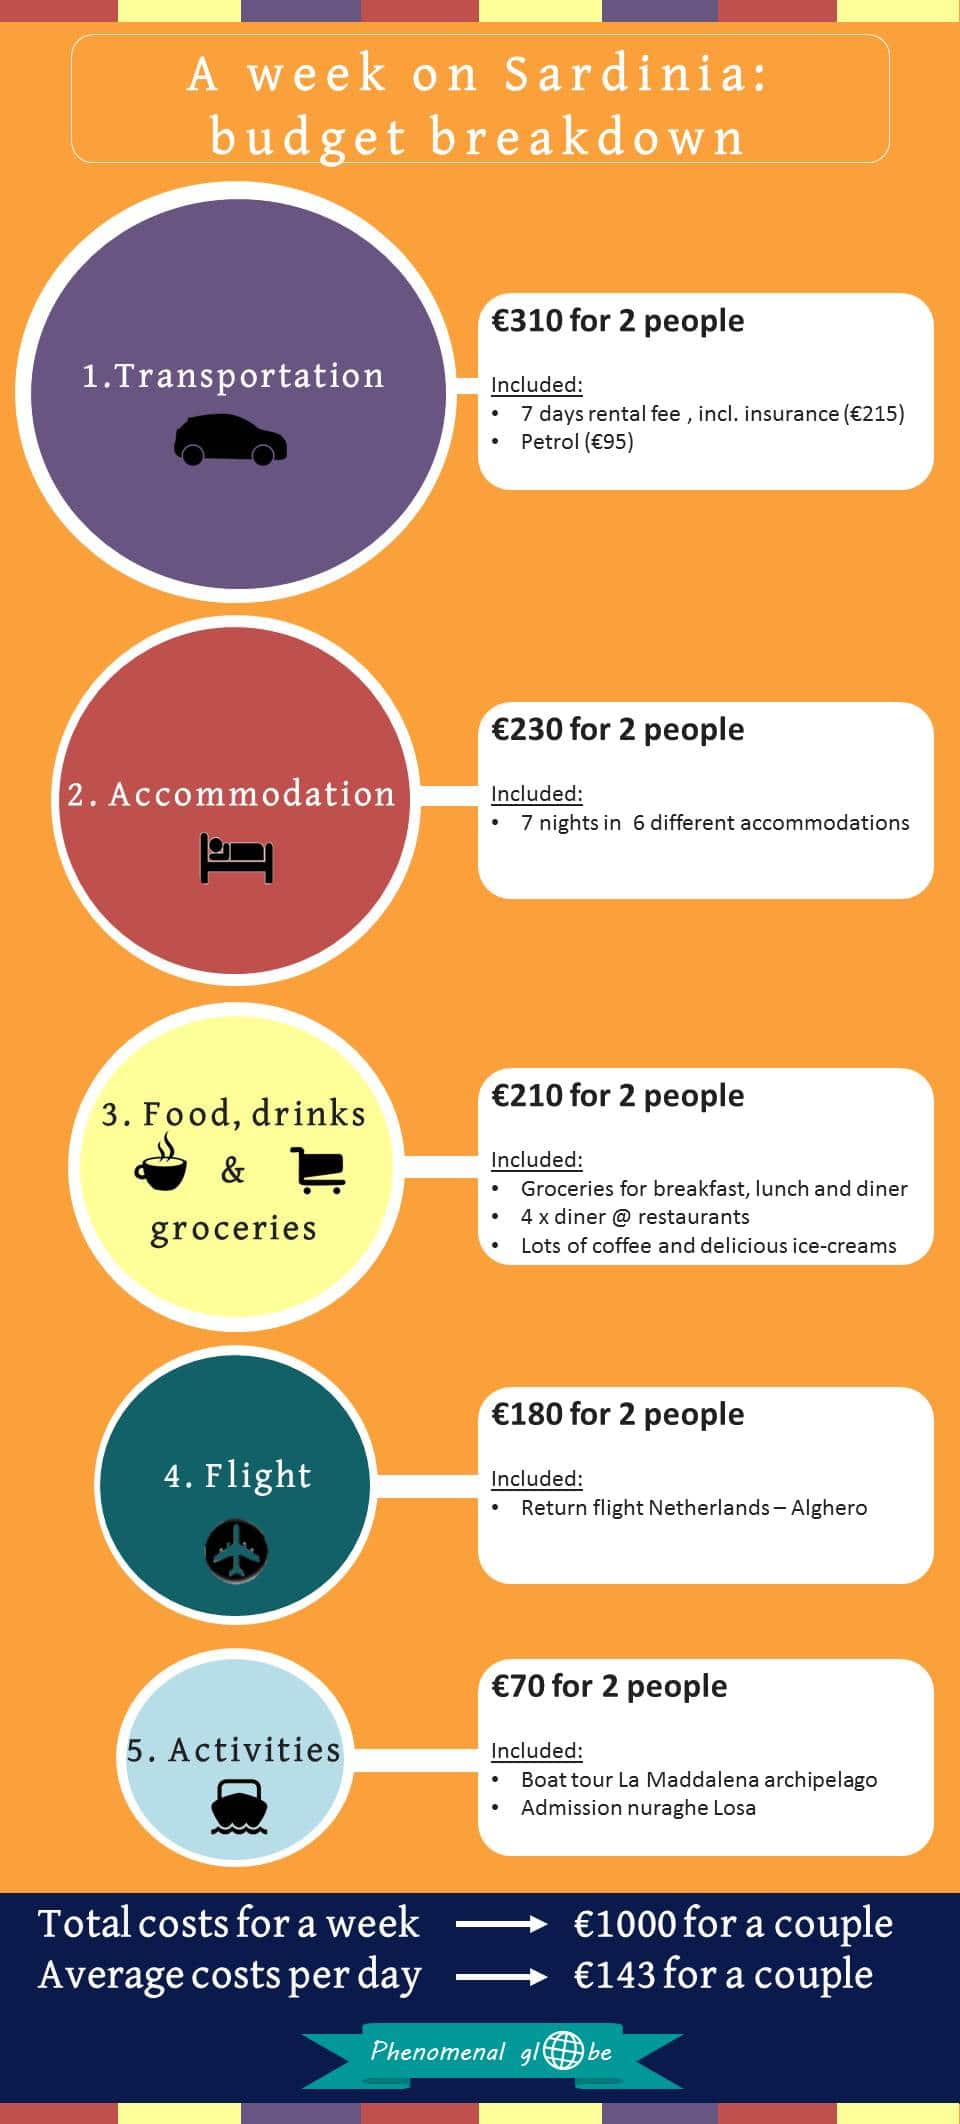 Going to Sardinia? Check this budget breakdown for information about transport, accommodation, food and activities. Read the full post on Phenomenal Globe Travel blog for detailed info where to go and where to stay!